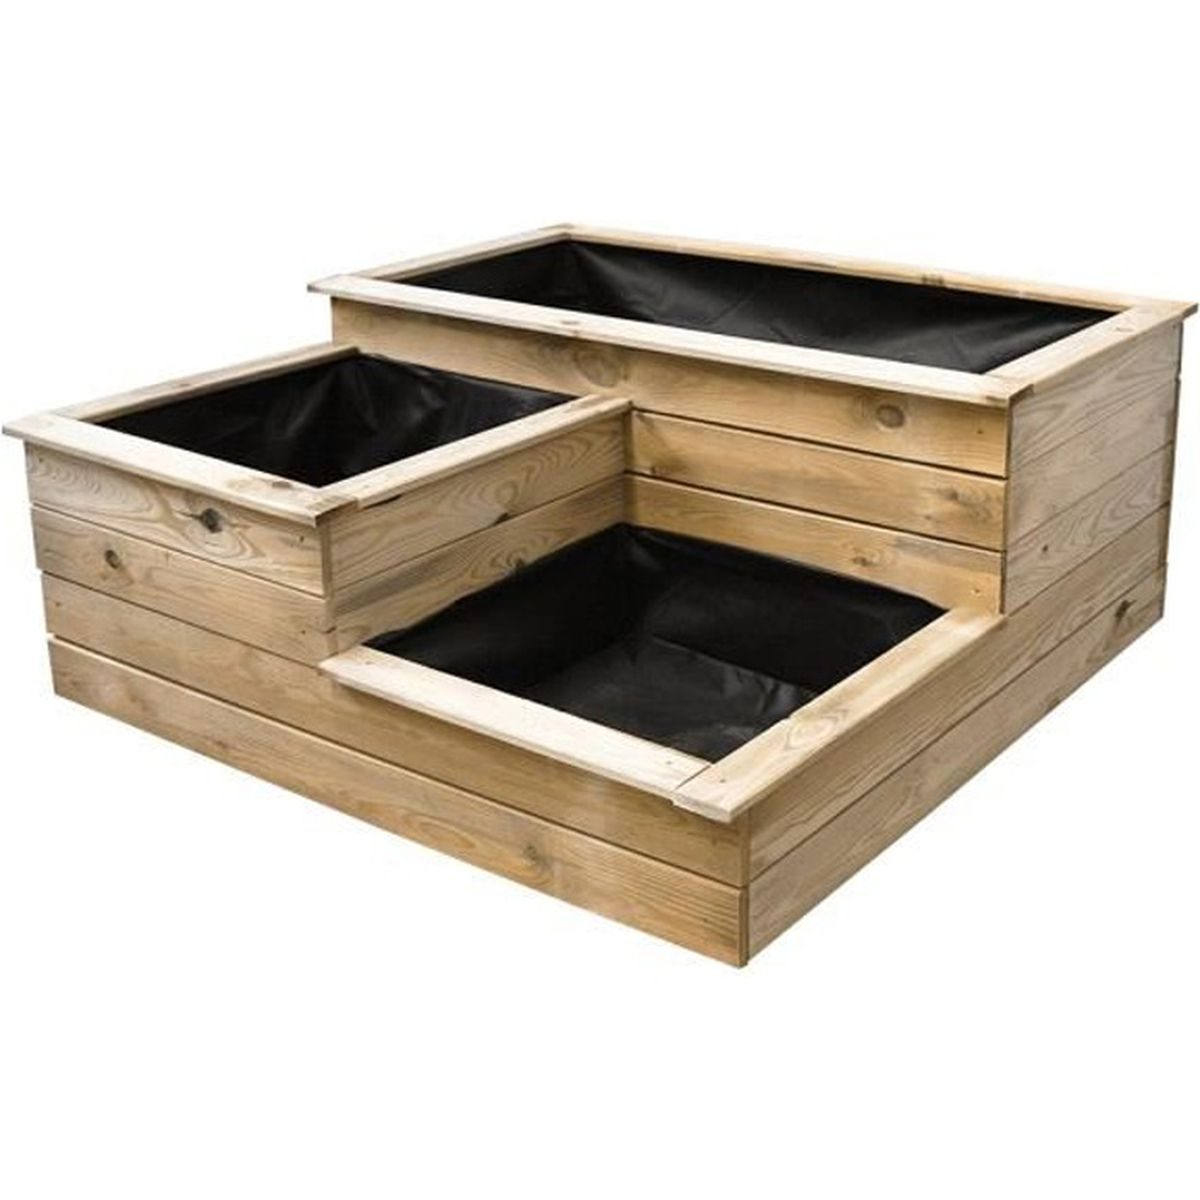 carr potager 3 bacs en bois achat vente carr potager. Black Bedroom Furniture Sets. Home Design Ideas